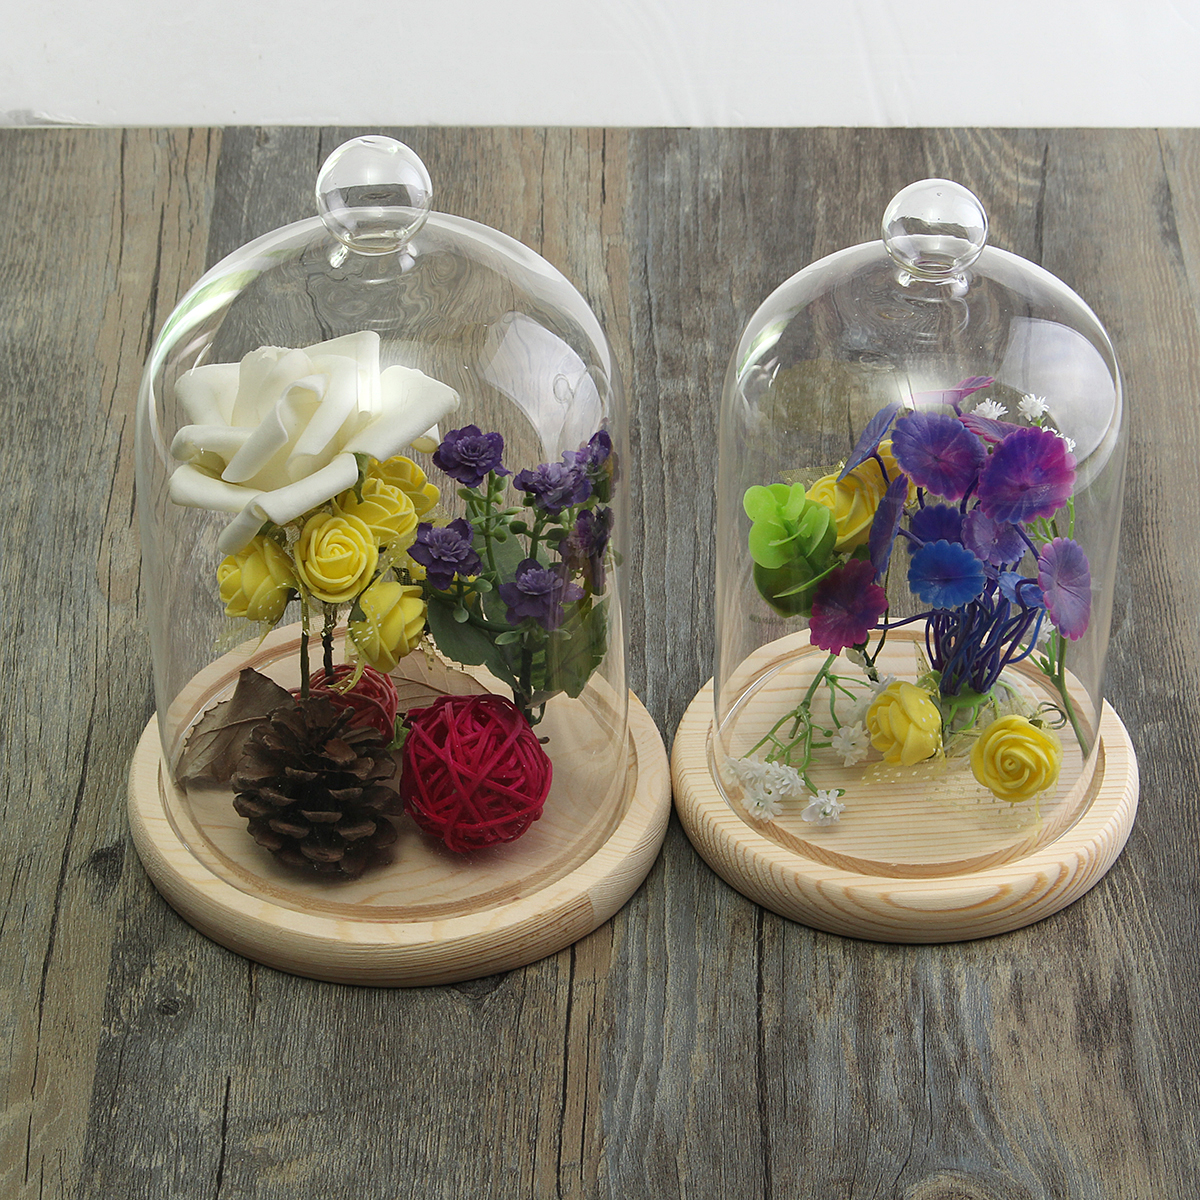 Glass Display Dome Clothe Bell Jar Flower Preservation Vase with Wooden Base 100mm 120mm